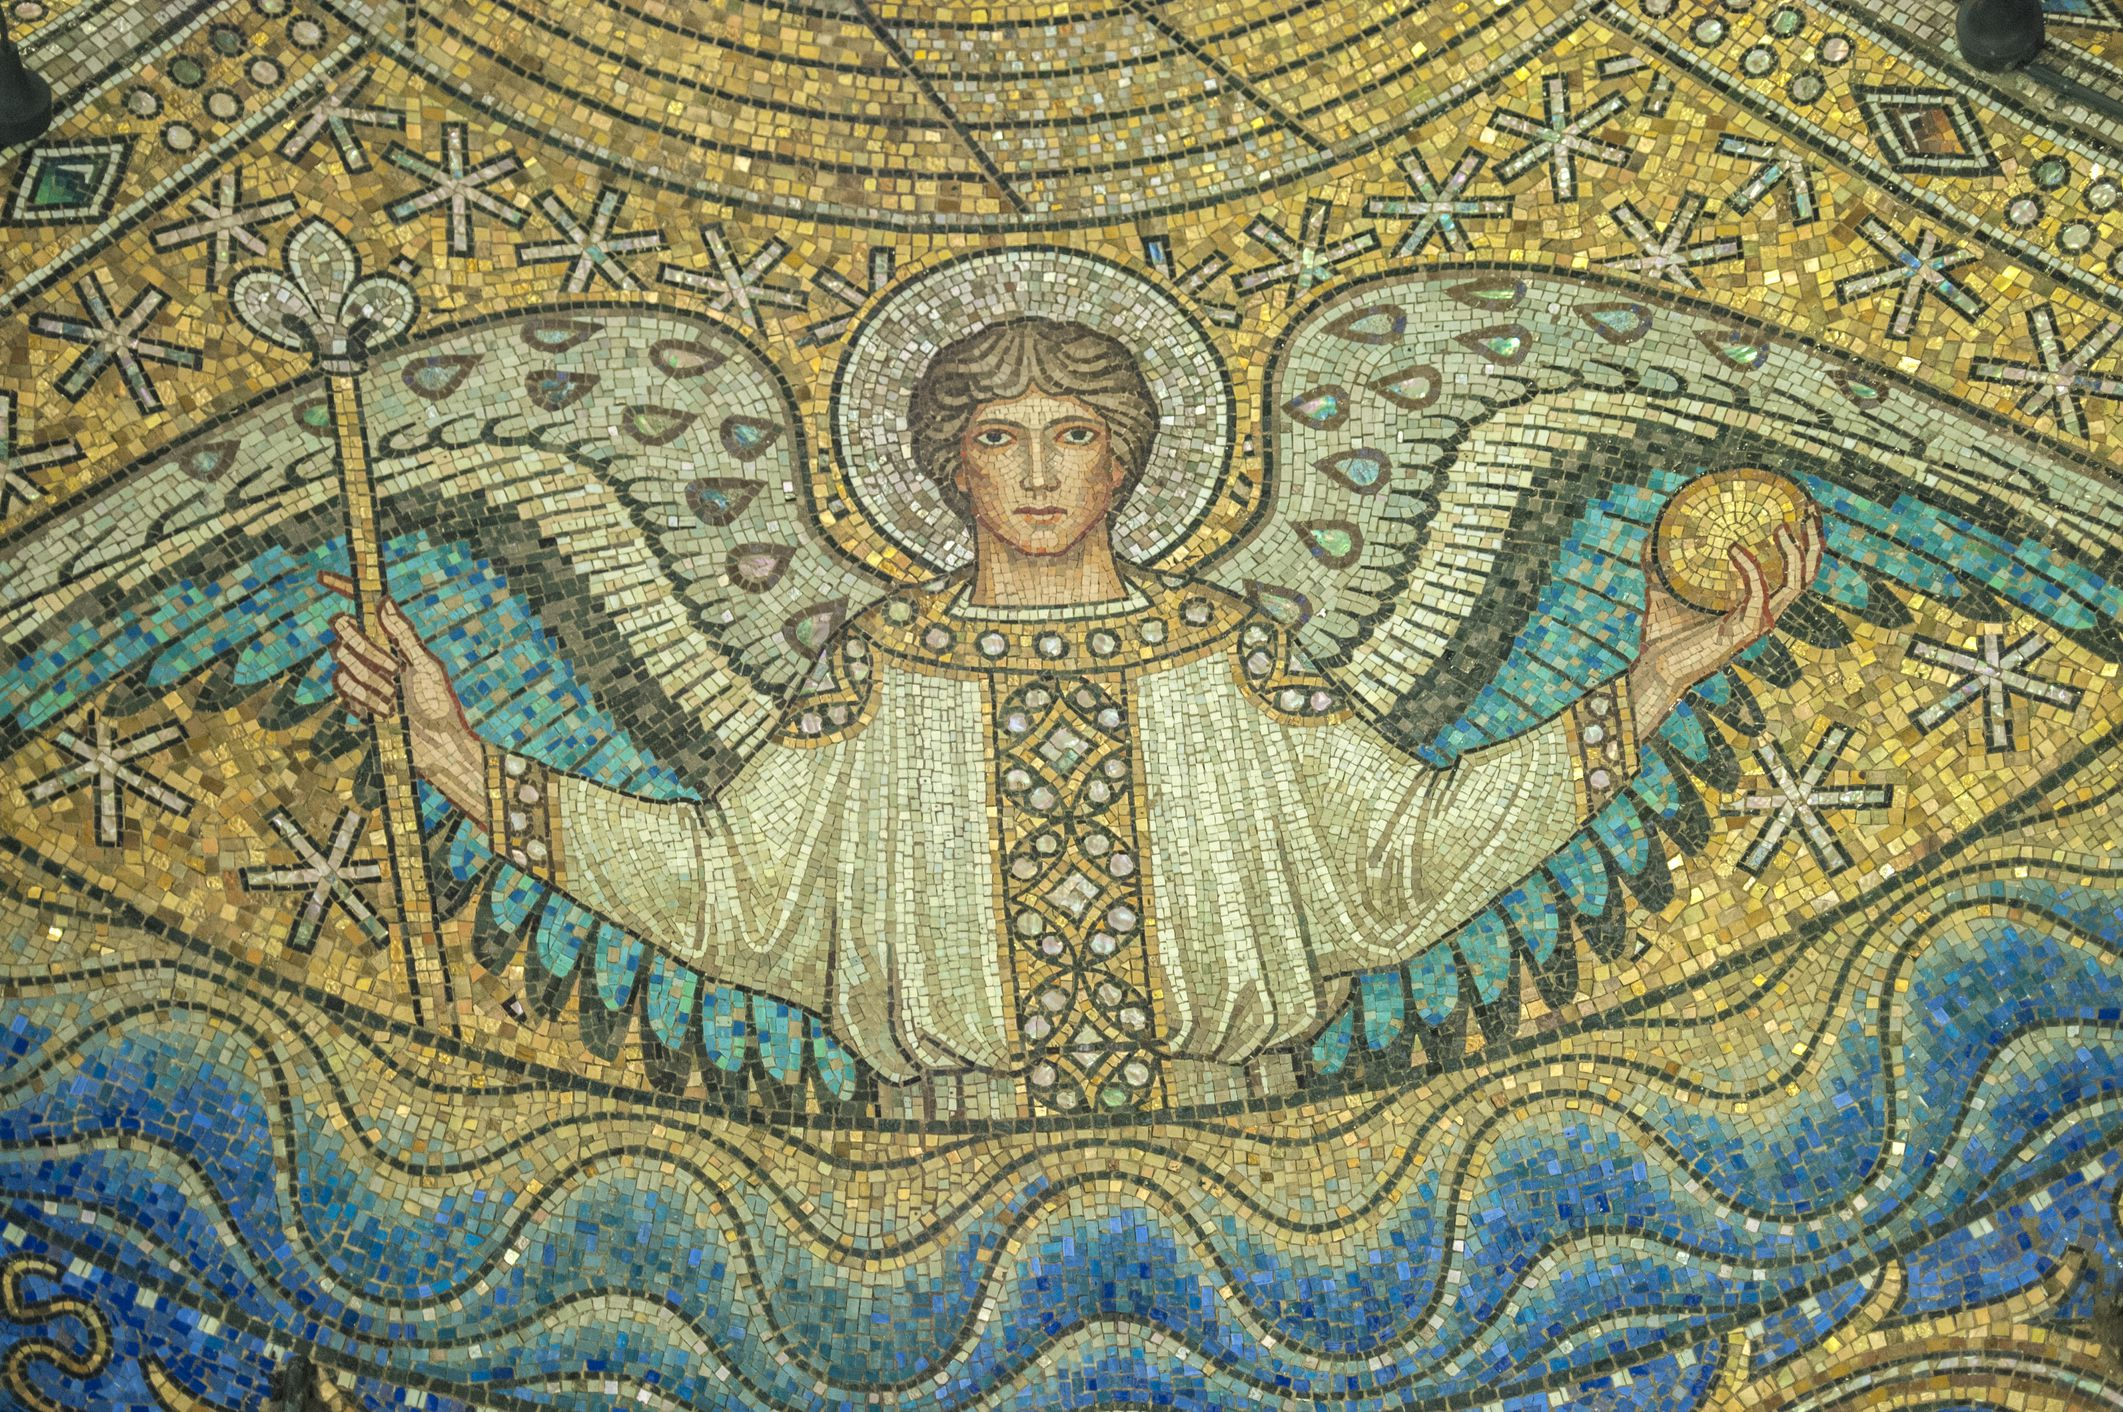 Archangels names and meanings catholic - Archangels Names And Meanings Catholic 48